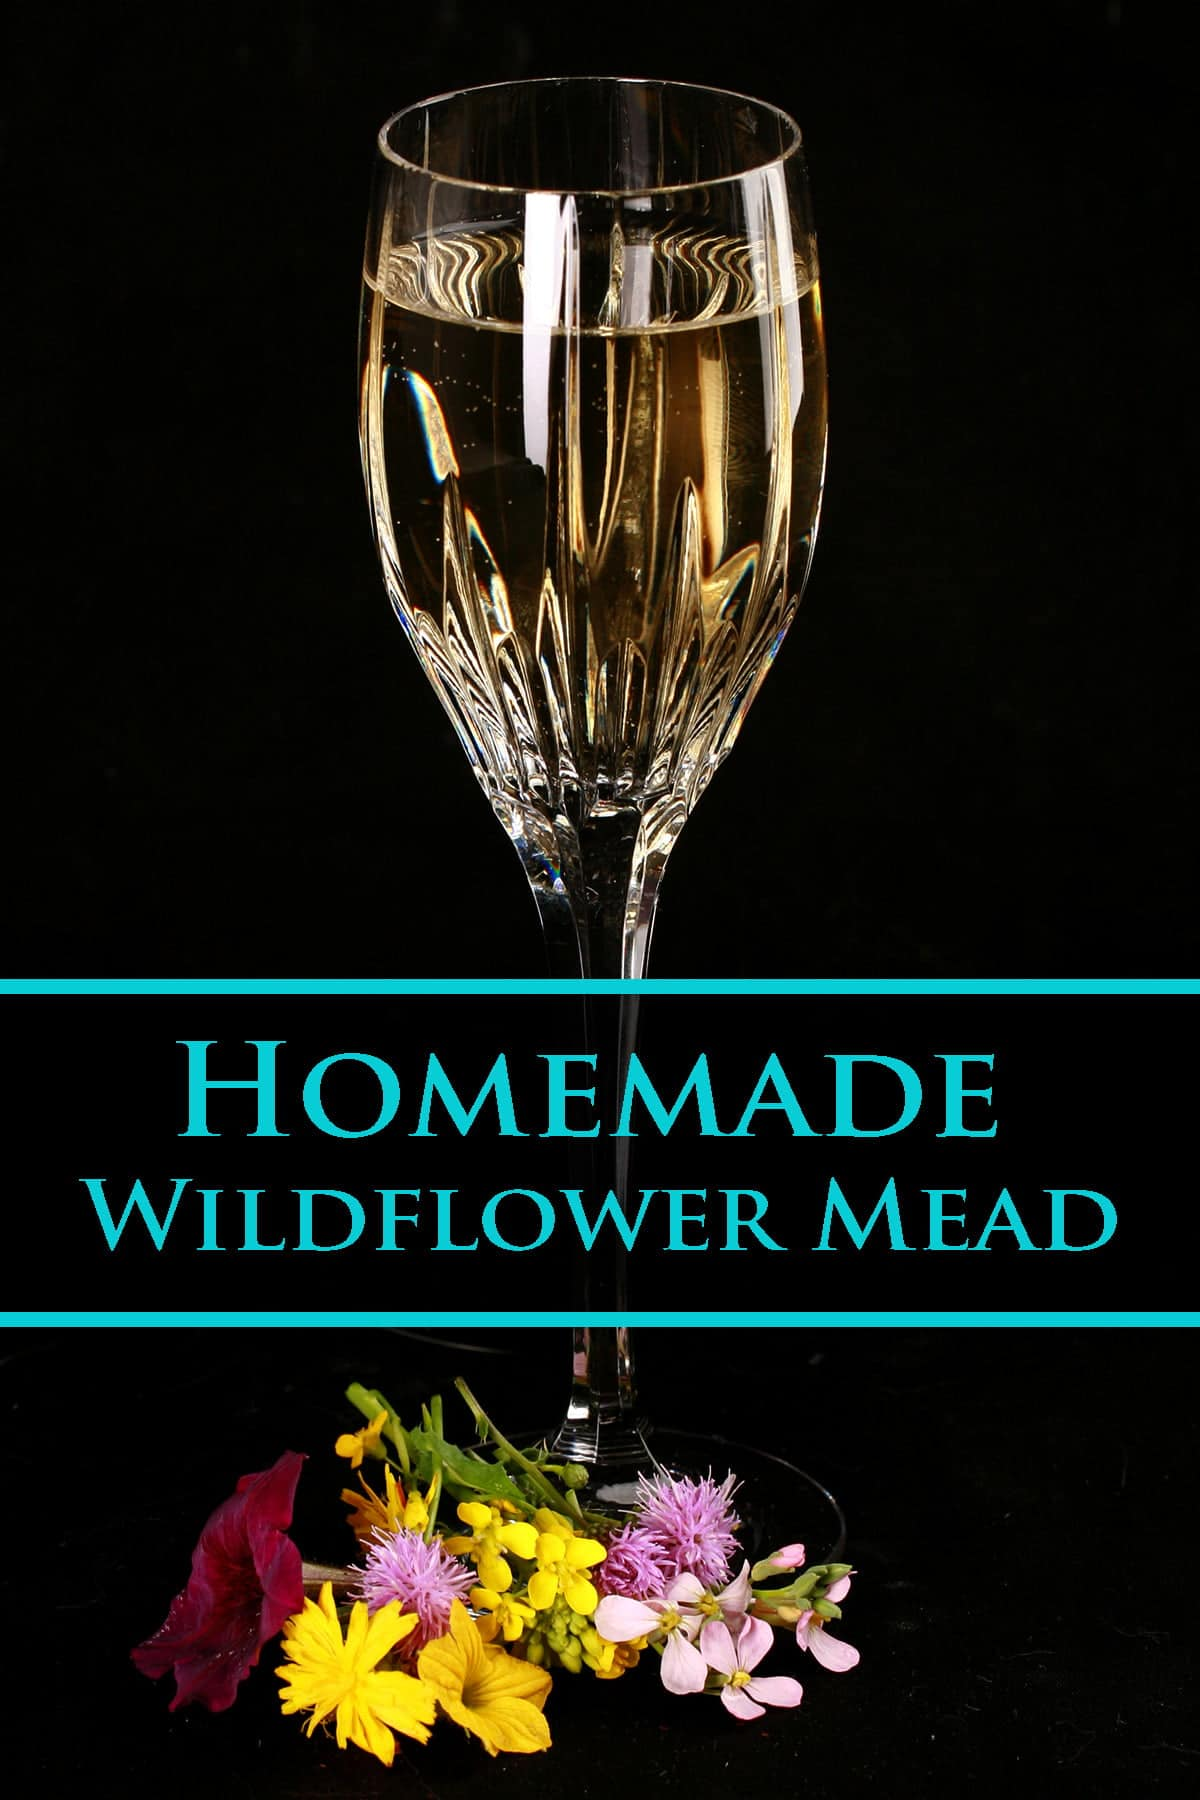 Glass of homemade wildflower mead in a tall wine glass. There are flowers at the base of the glass.